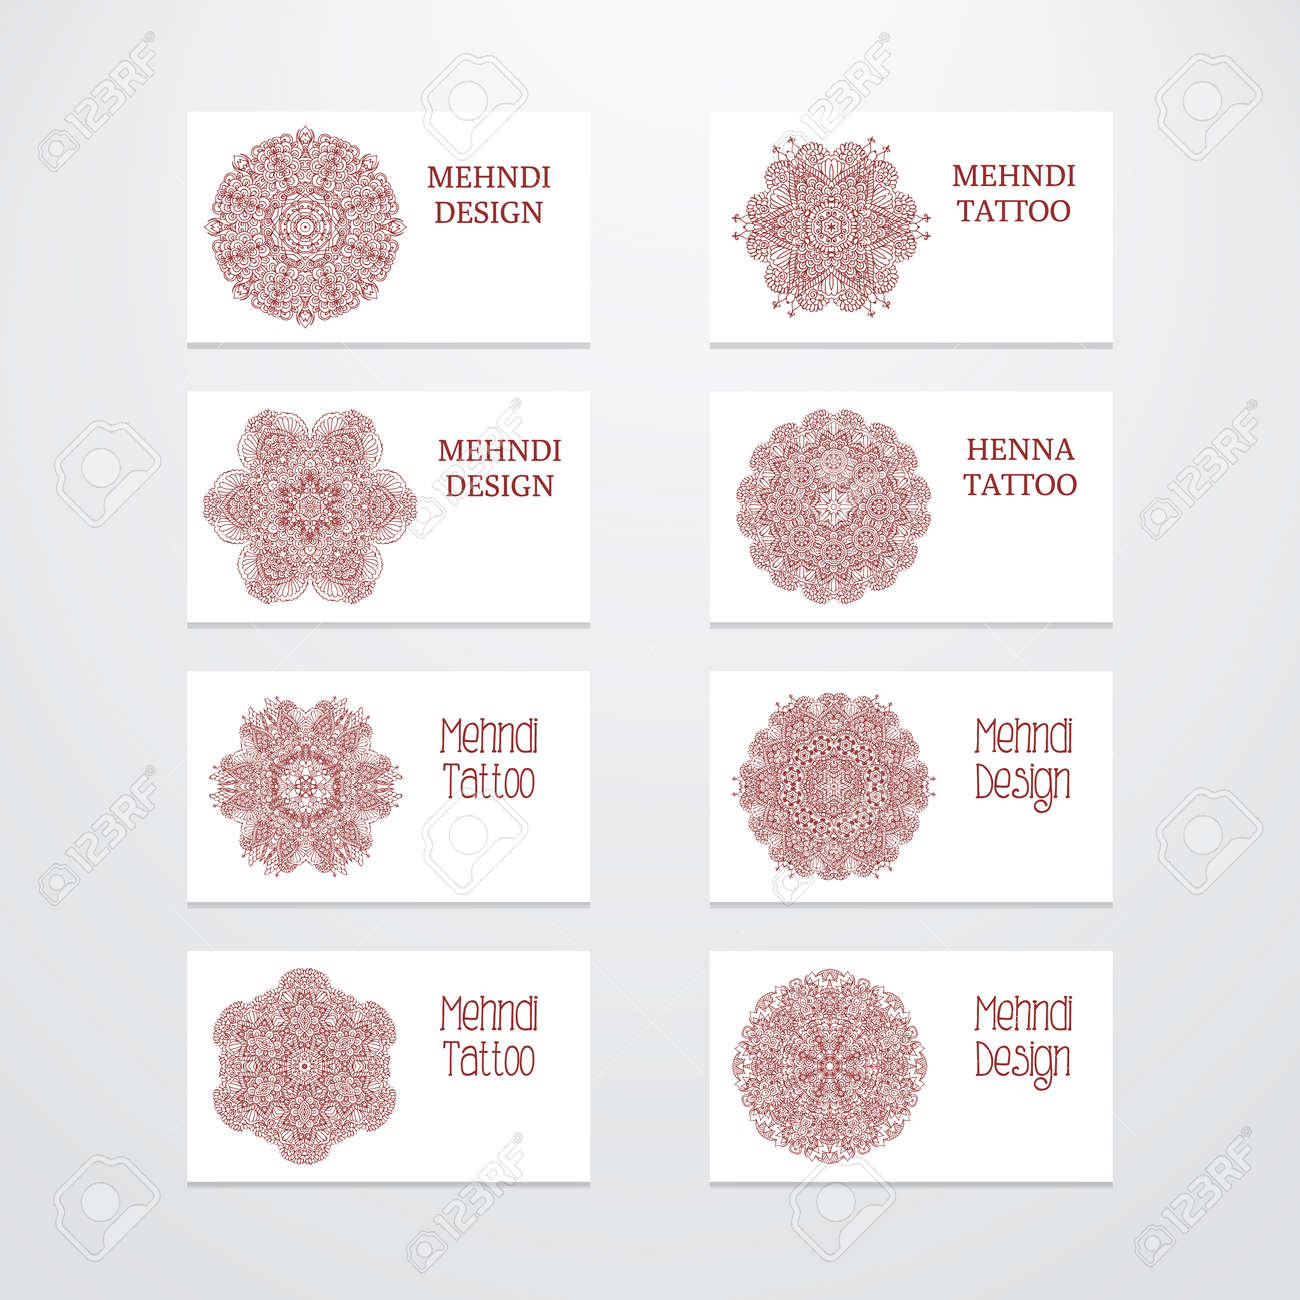 Set of business card templates vintage decorative round patterns illustration set of business card templates vintage decorative round patterns indian arabic ornaments mandala mehndi henna tattoo design flashek Gallery